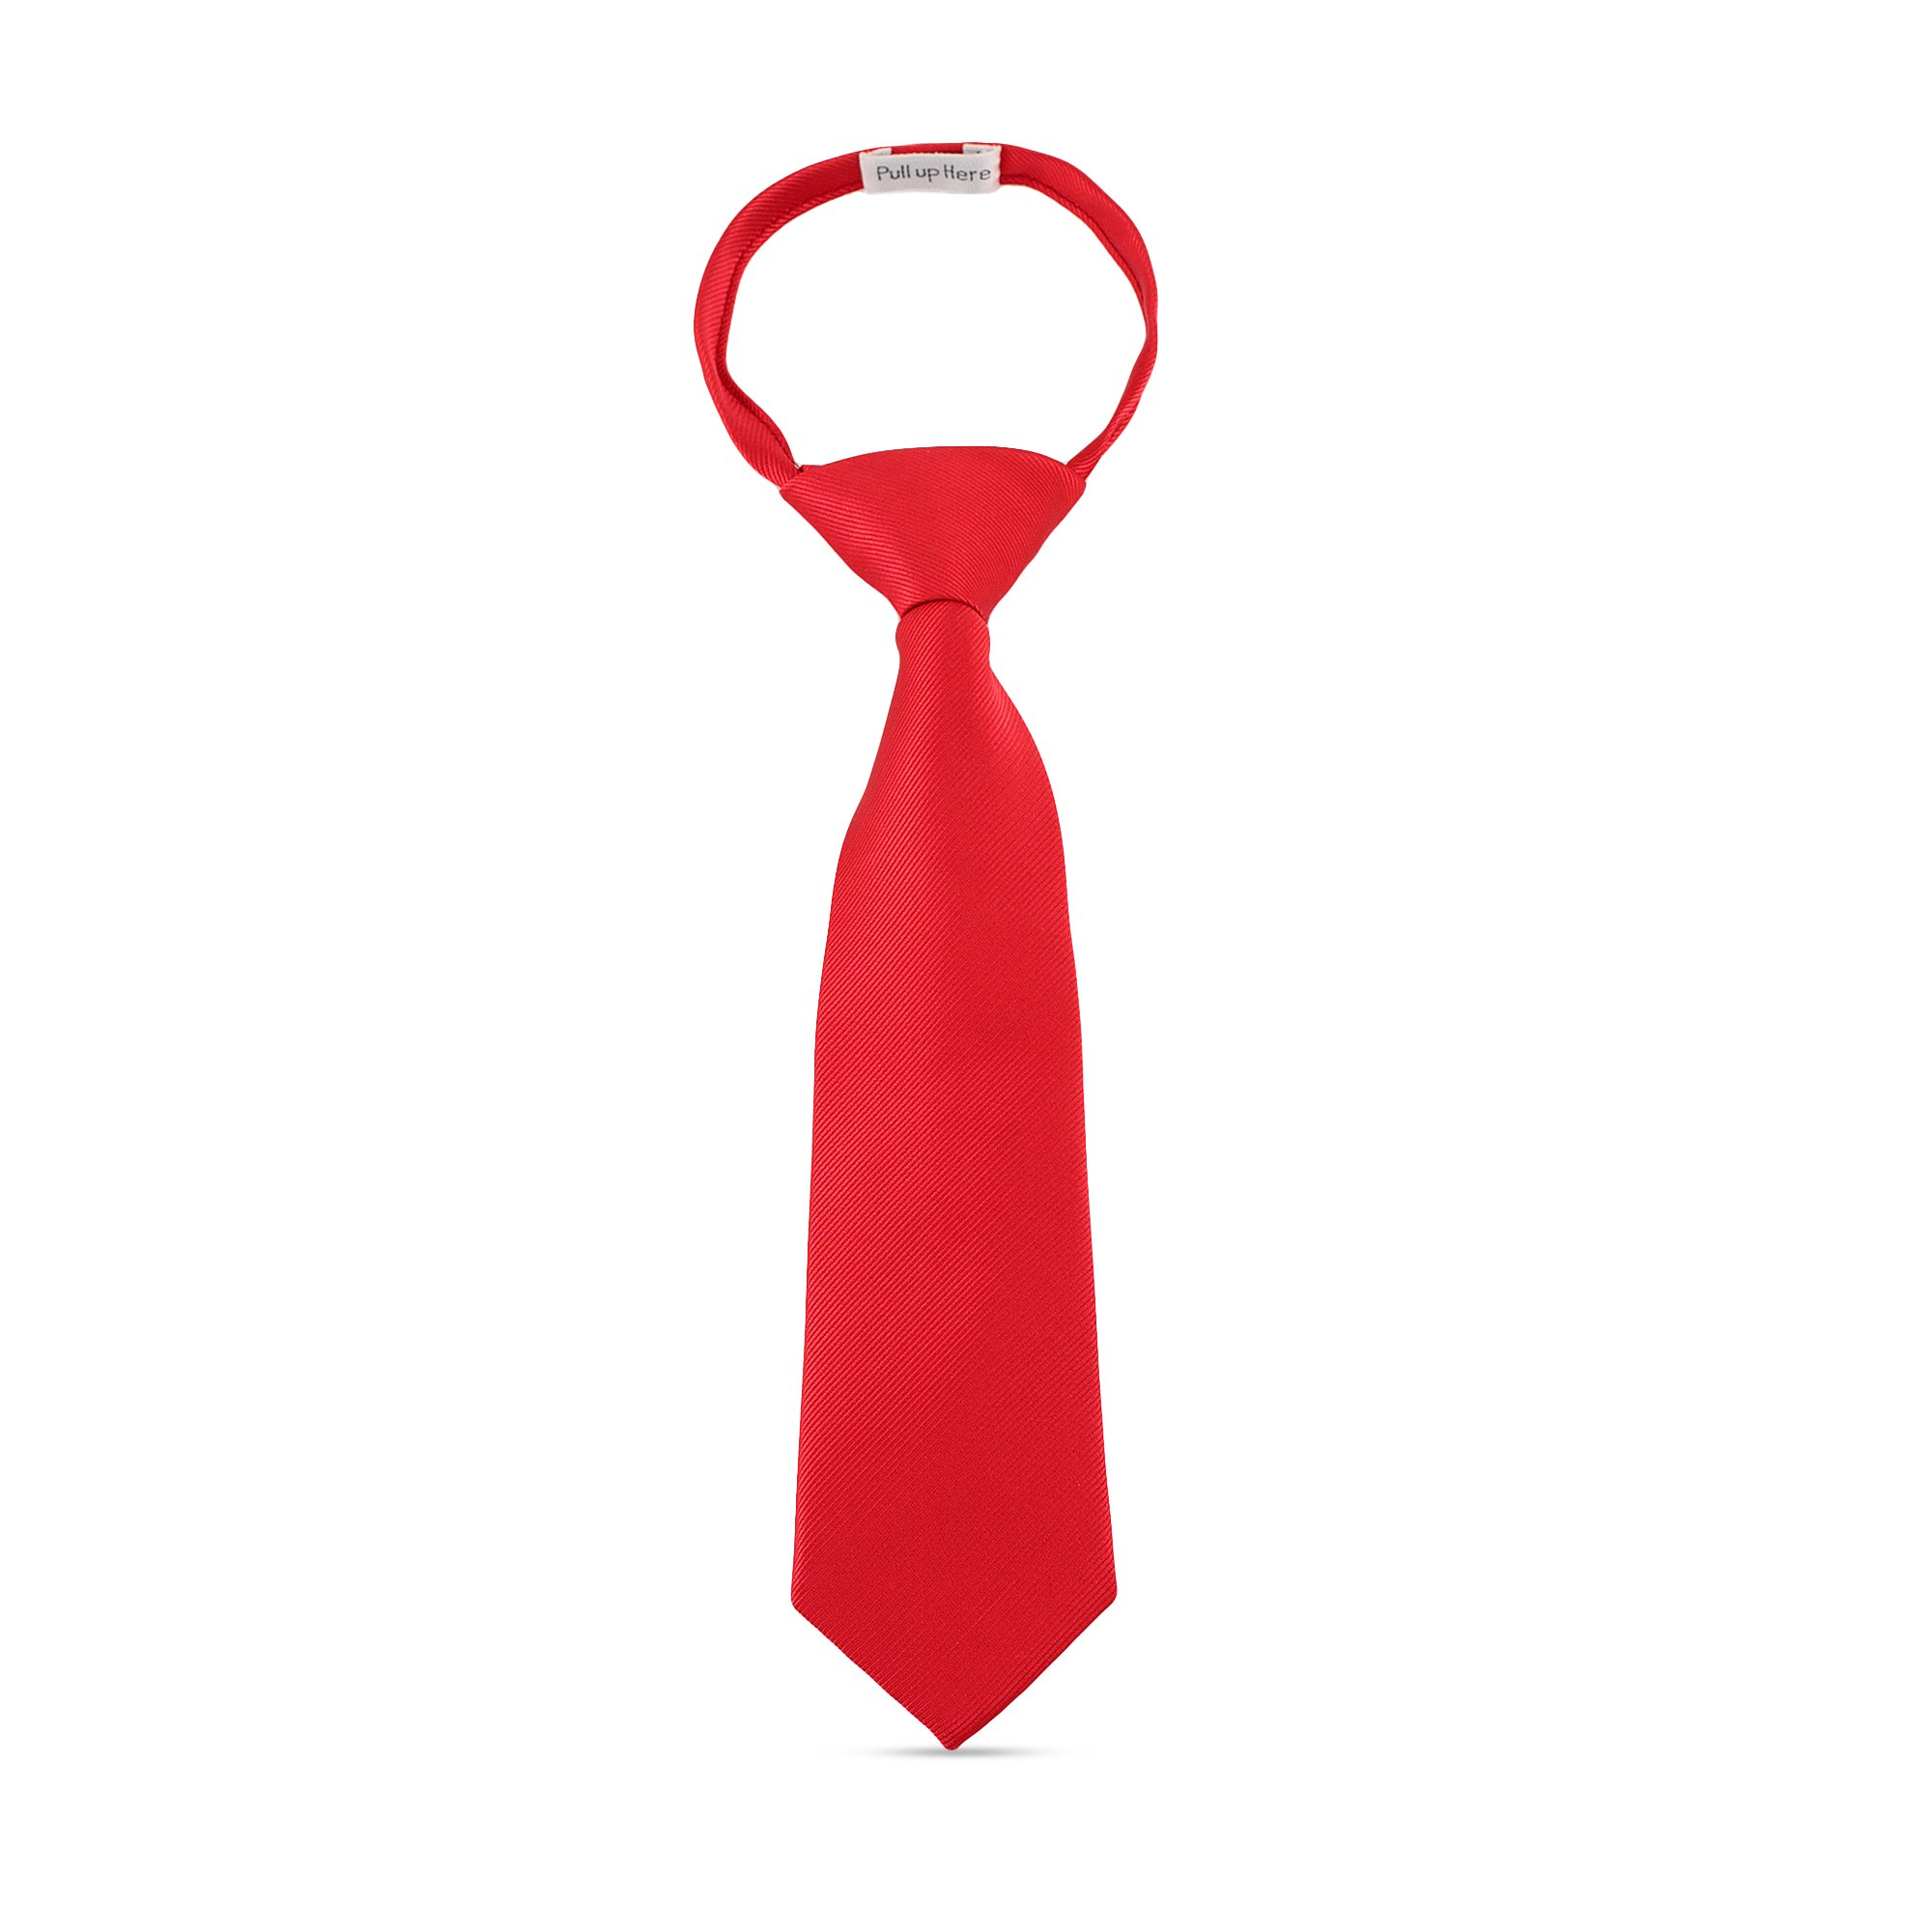 Handmade Zipper 11'' Ties For Boys Woven Boys Red Ties: For Kids Wedding Graduation